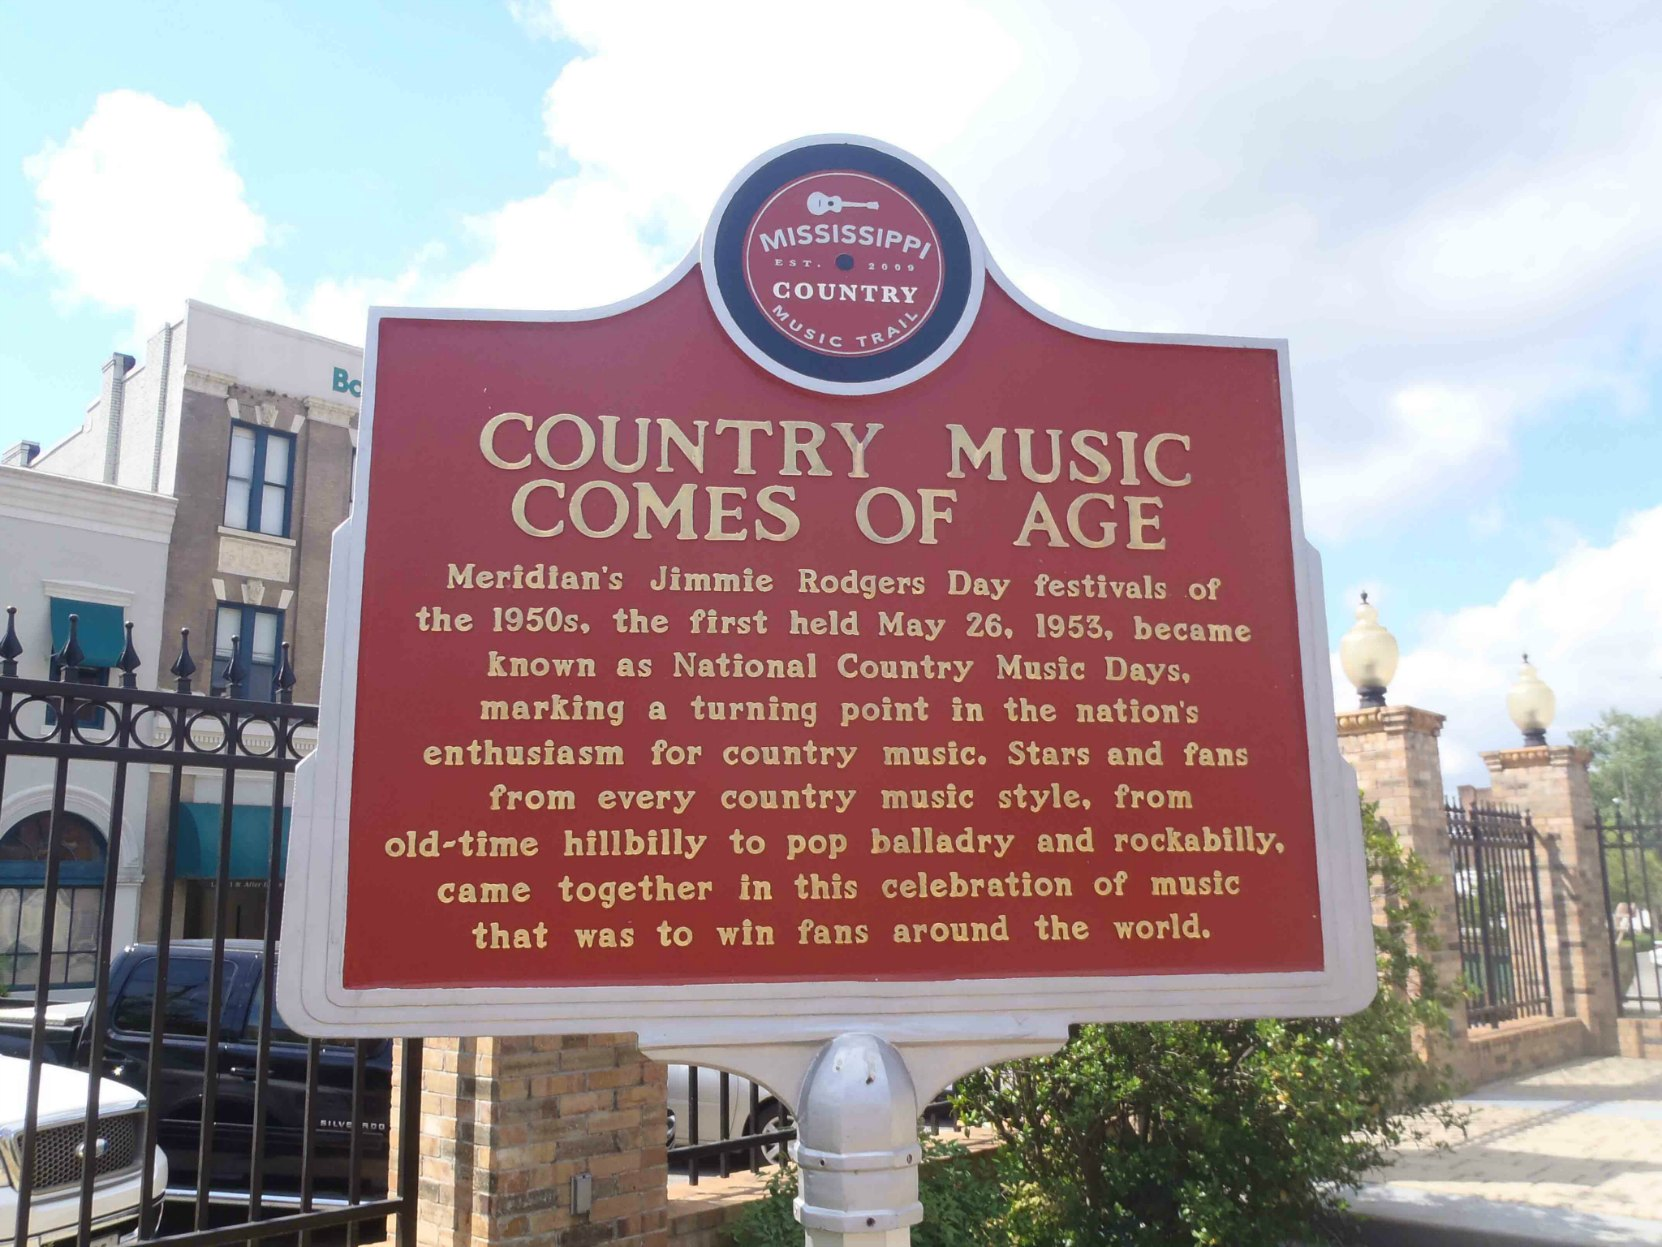 Mississippi Country Music Trail marker for Country Music Comes Of Age, Meridian, Mississippi